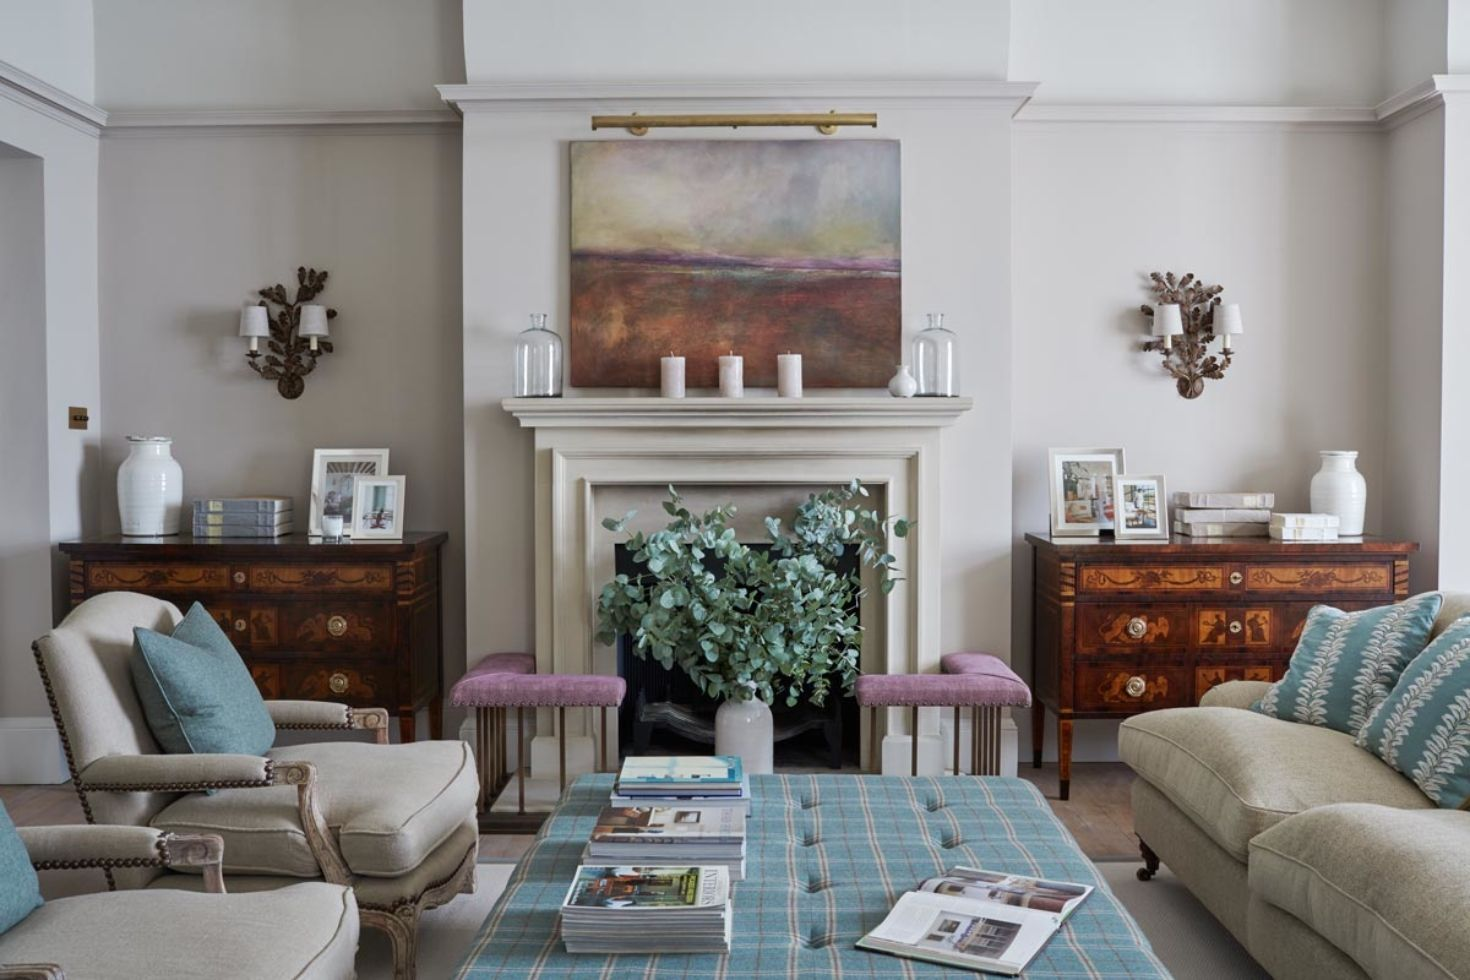 Large Drawing Room With Antique Side Tables Centred To Artwork Above The Fireplace Sims Hilditch Designer Townhouse Interior Elegant Home Decor Interior Design